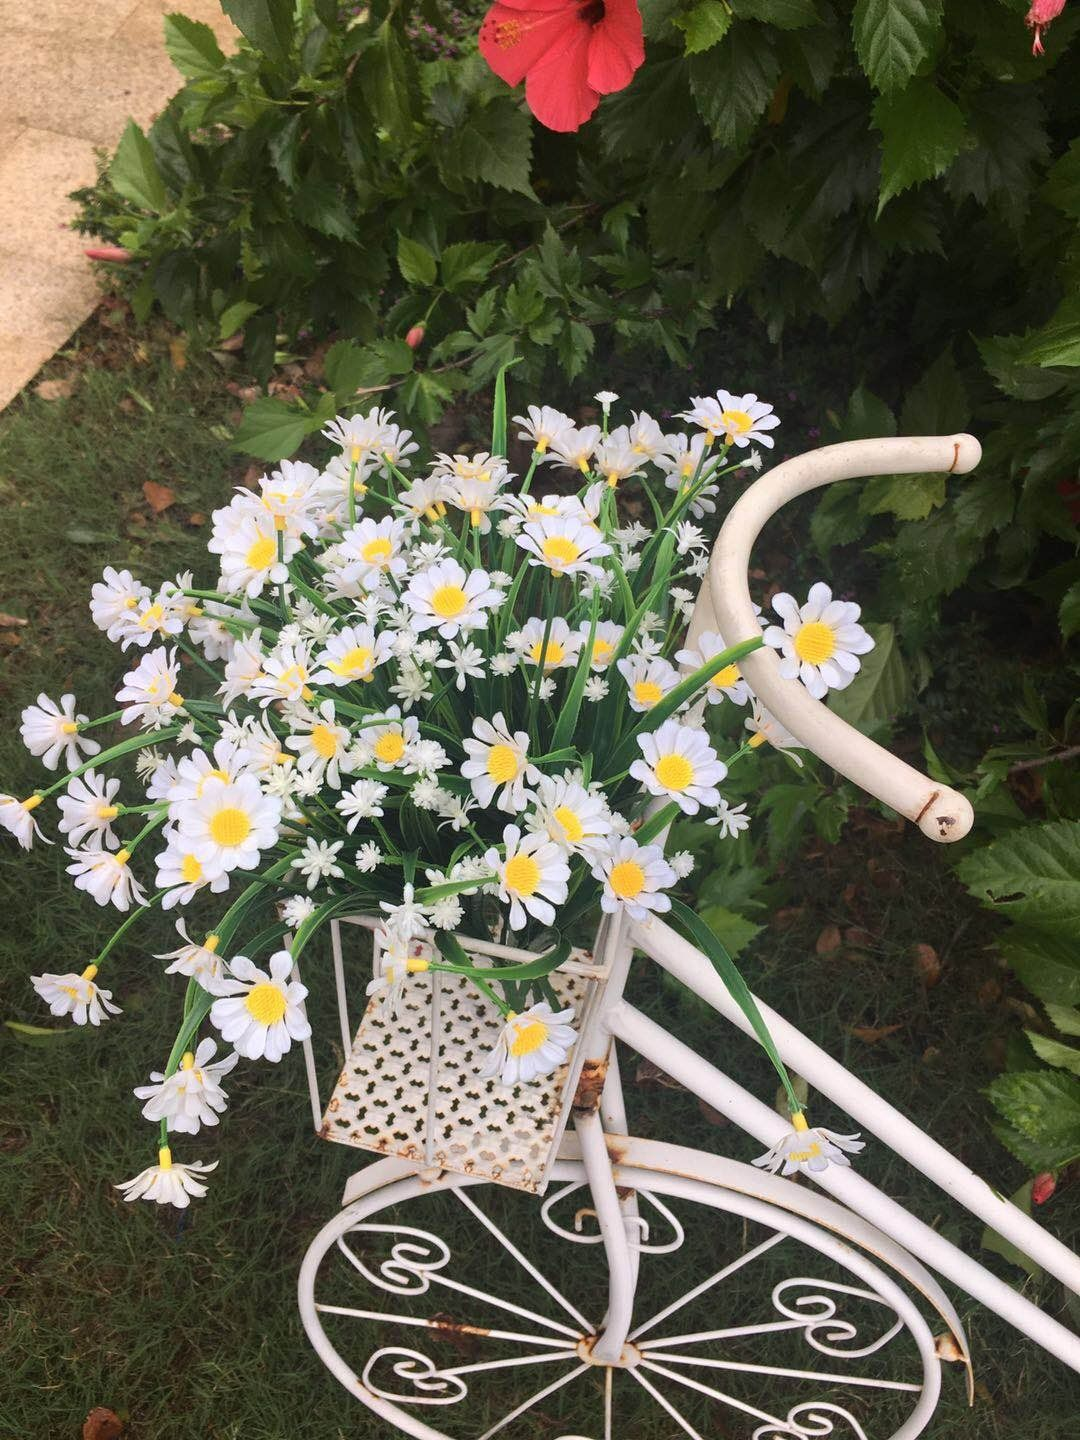 Daisies artificial flowers outdoor uv resistant daisy fake